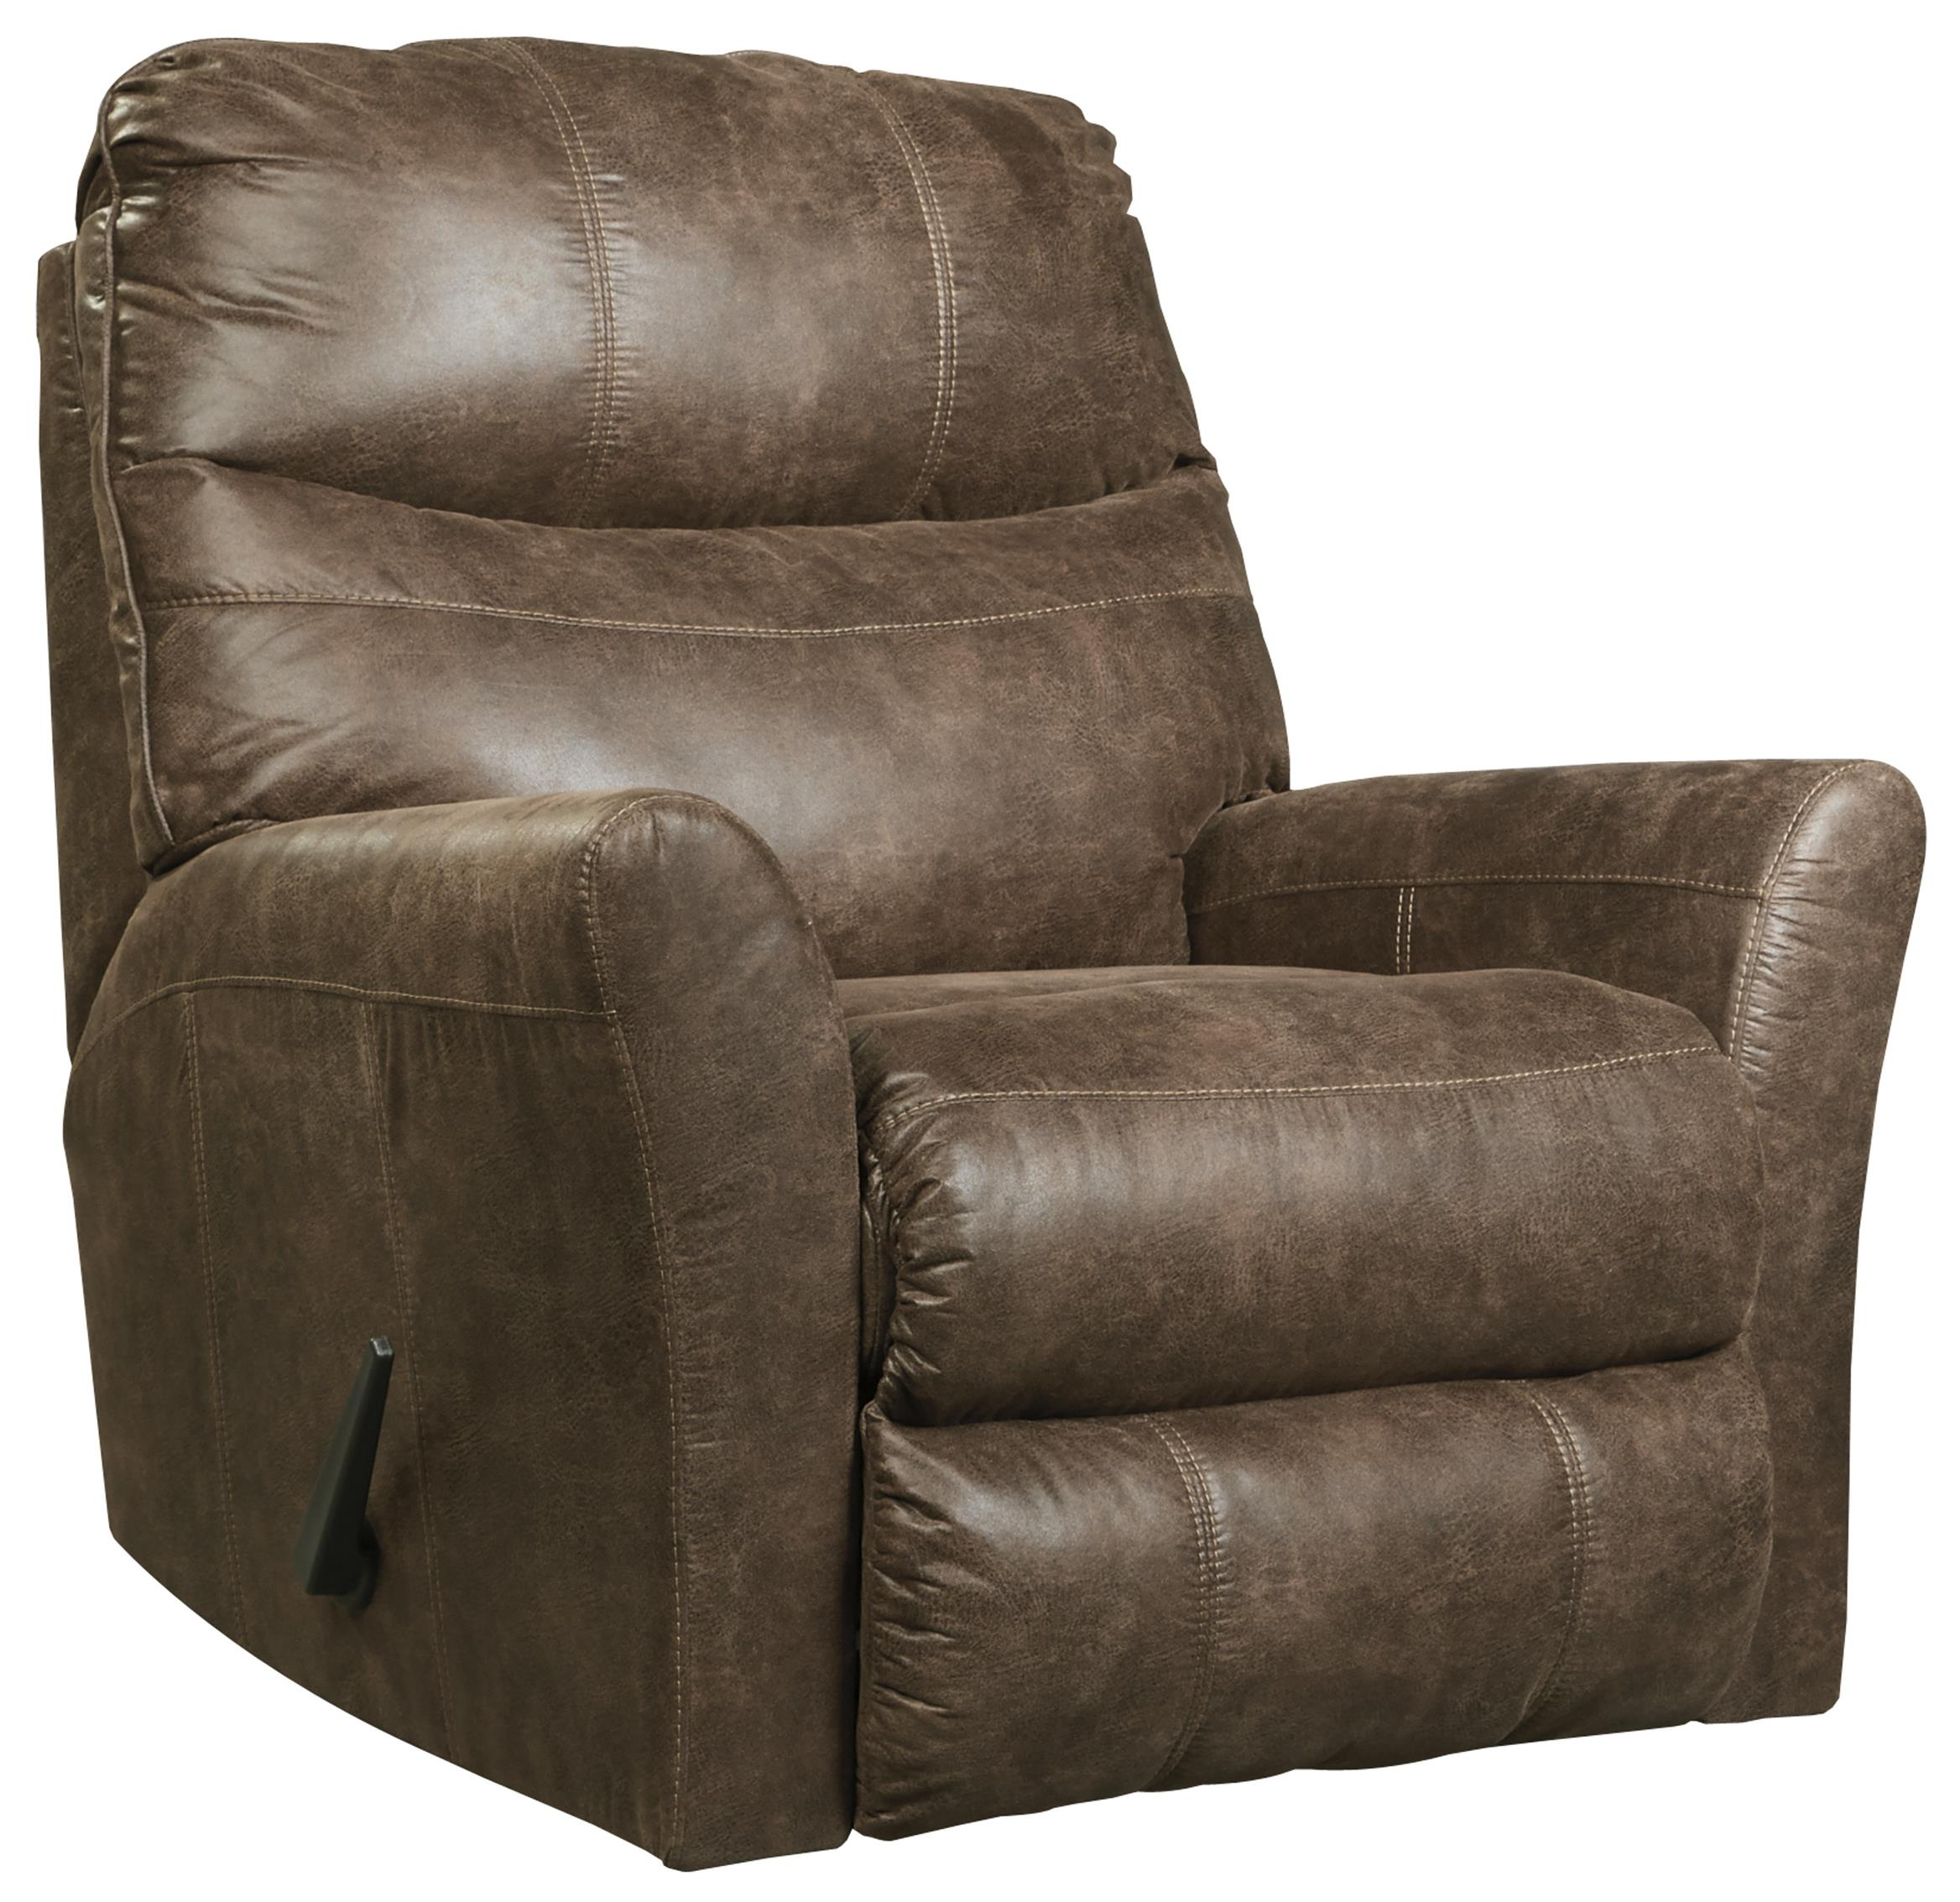 Signature Design by Ashley Tullos Rocker Recliner - Item Number: 6920325